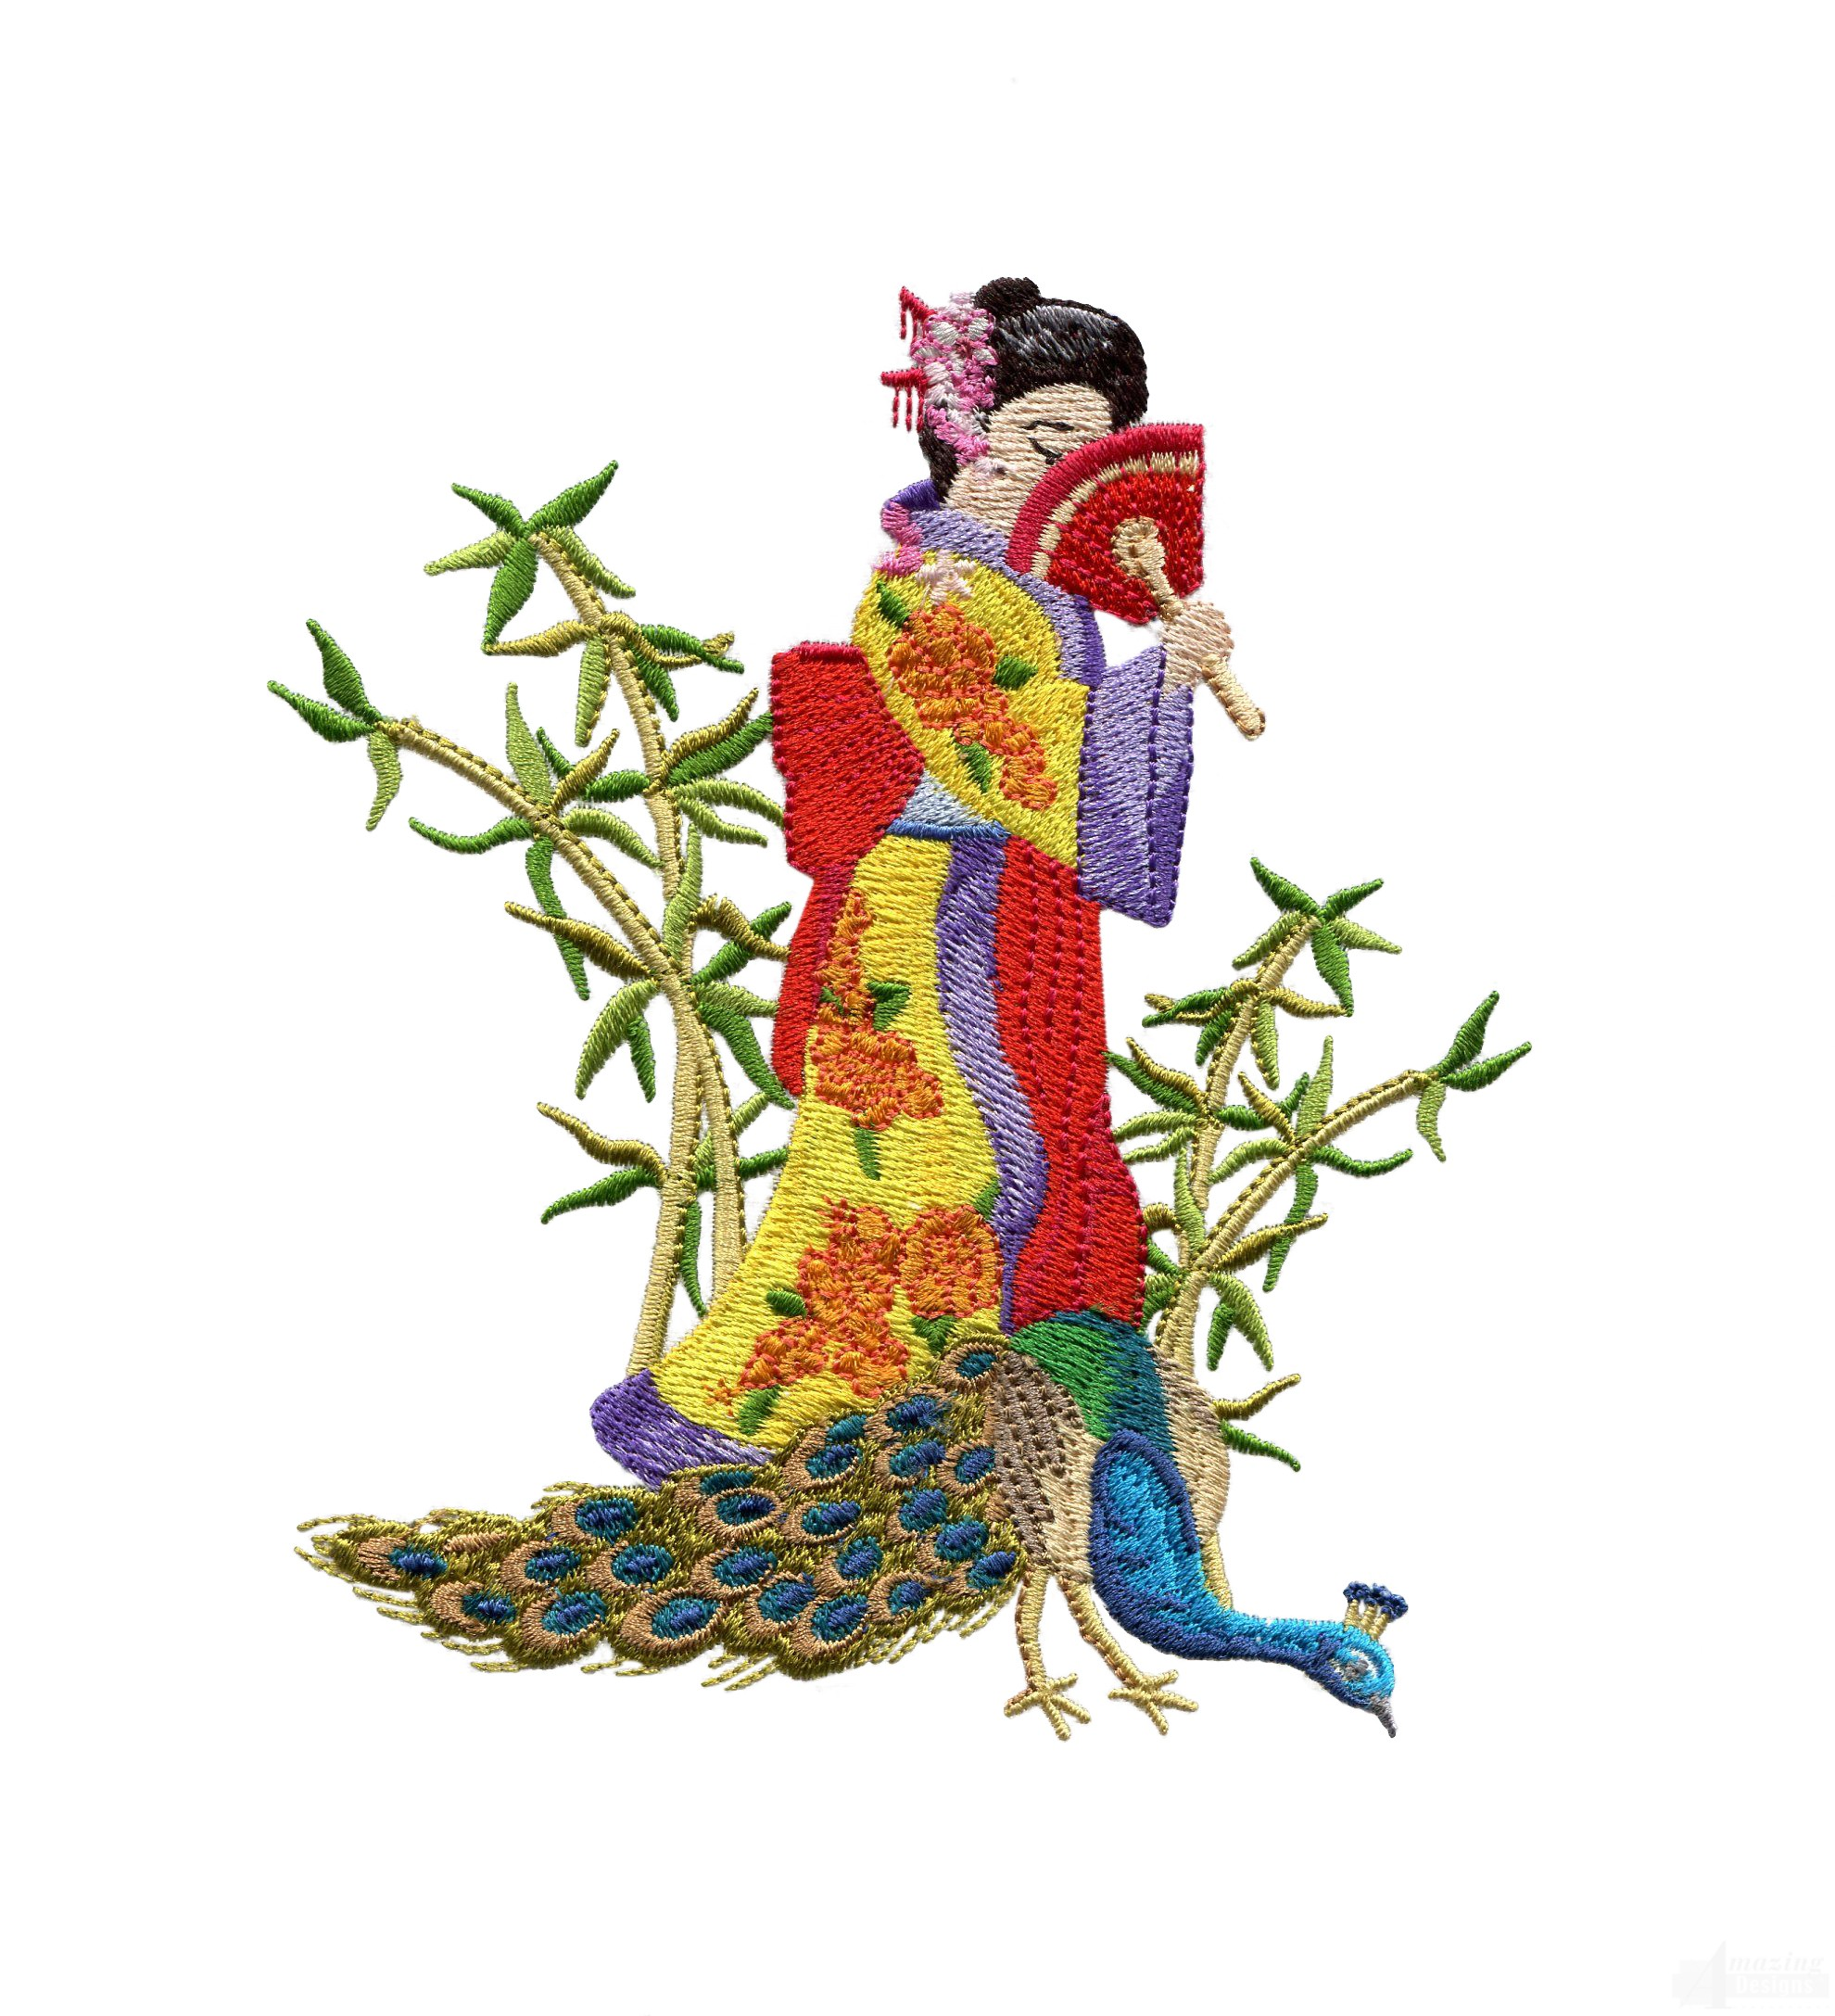 Swngg116 a geishas garden embroidery design for Garden embroidery designs free